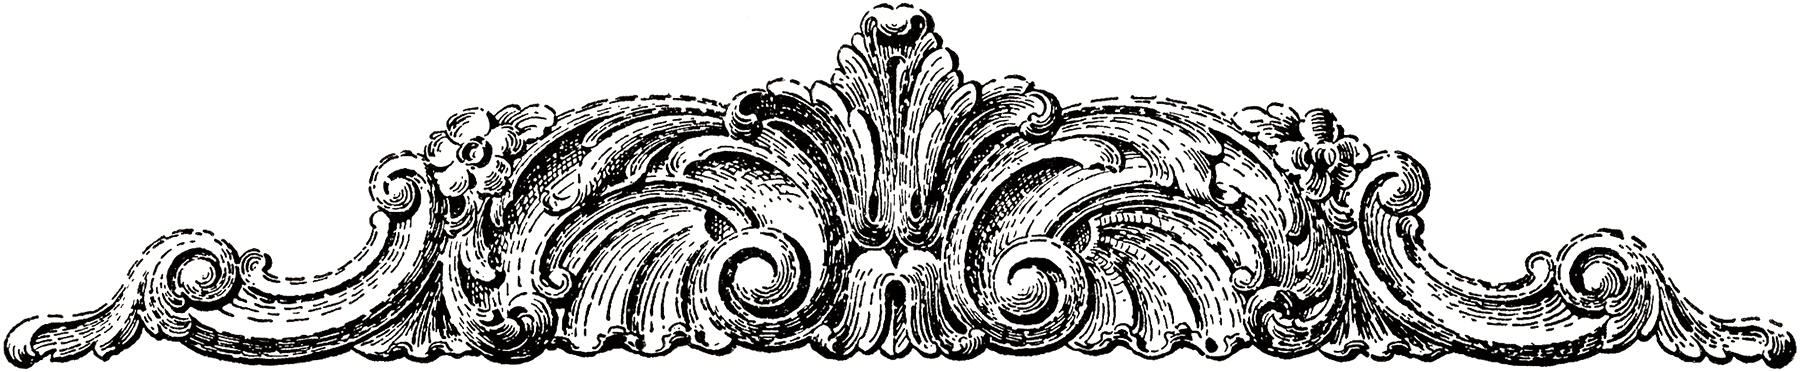 Ornamental Embellishment Image